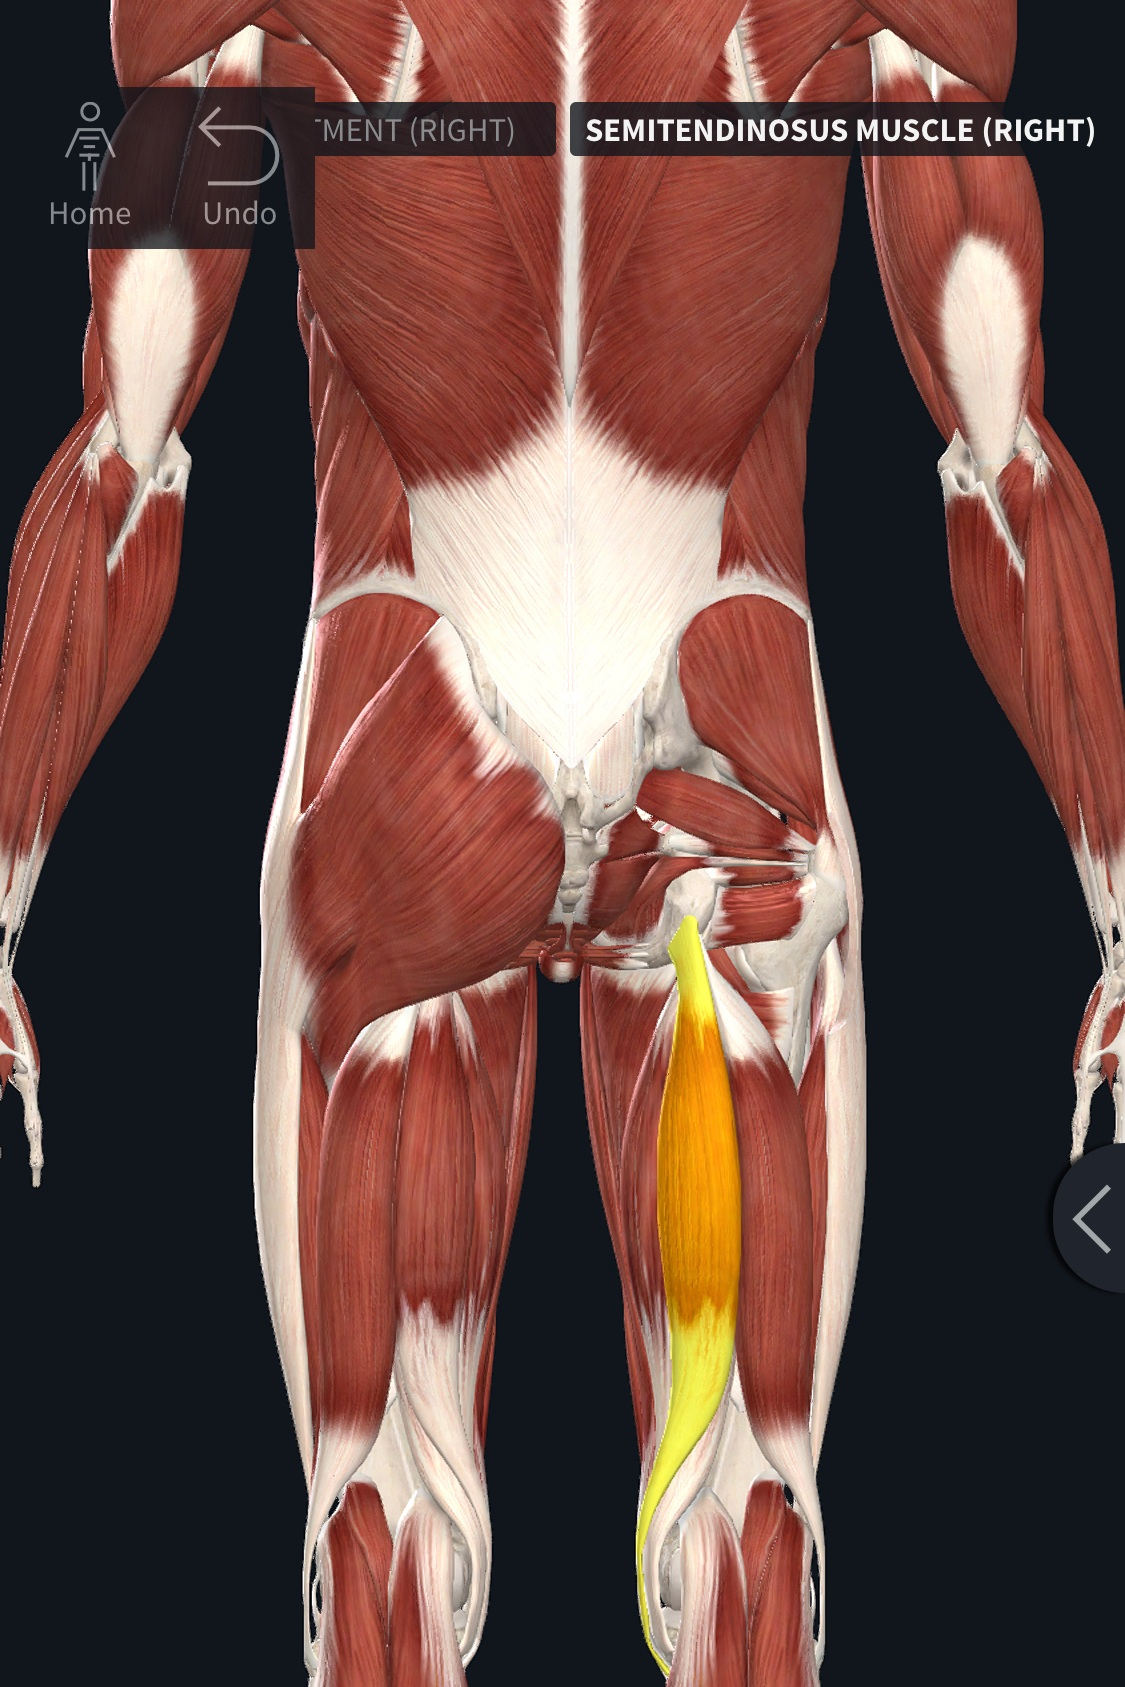 How To Get Rid of Hamstring Pain WITHOUT Stretching